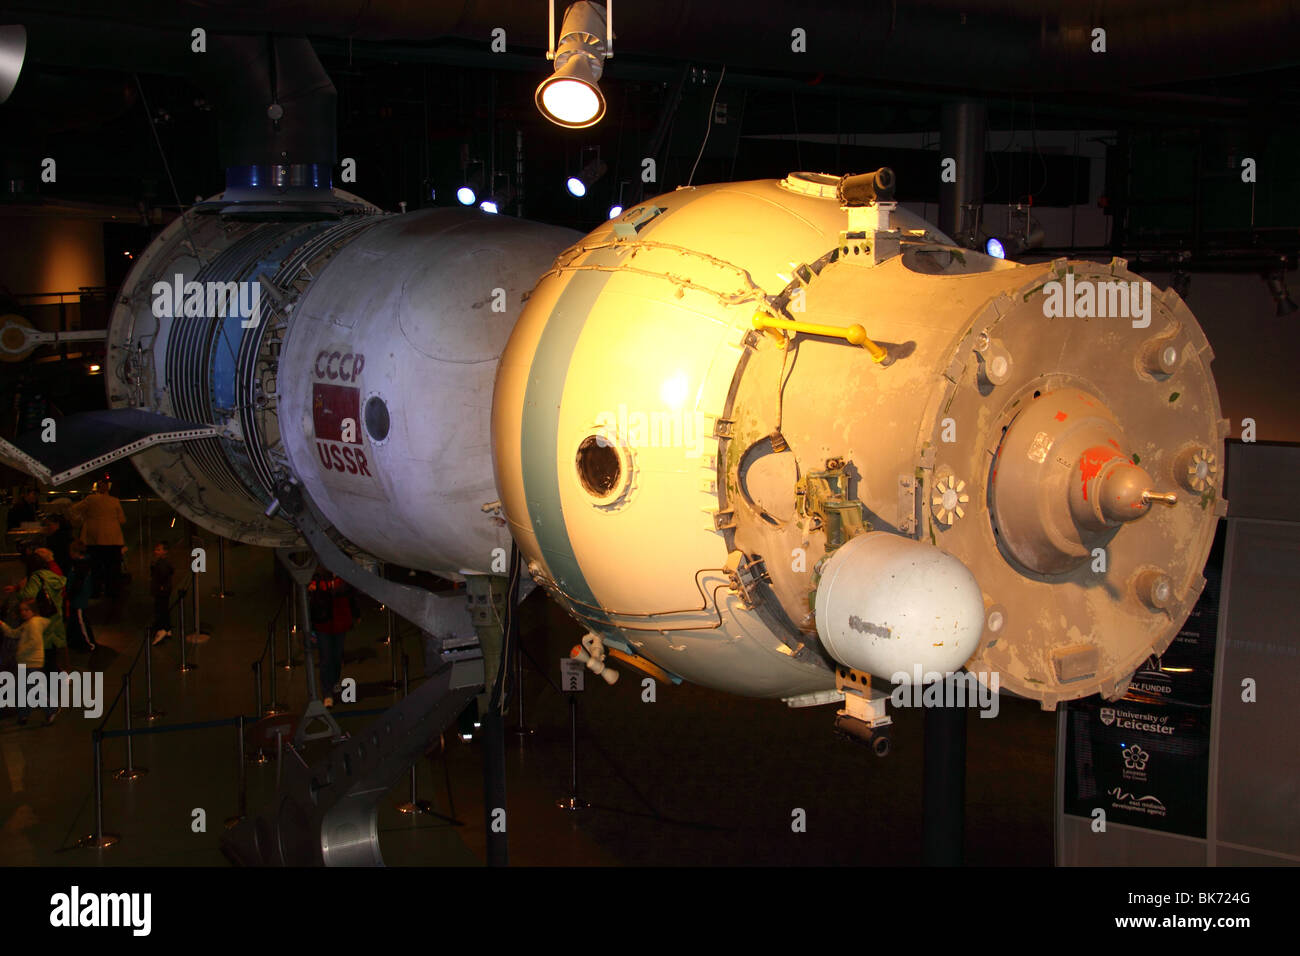 Soyuz space capsule from the Russian space program exhibited at the national space centre leicester - Stock Image